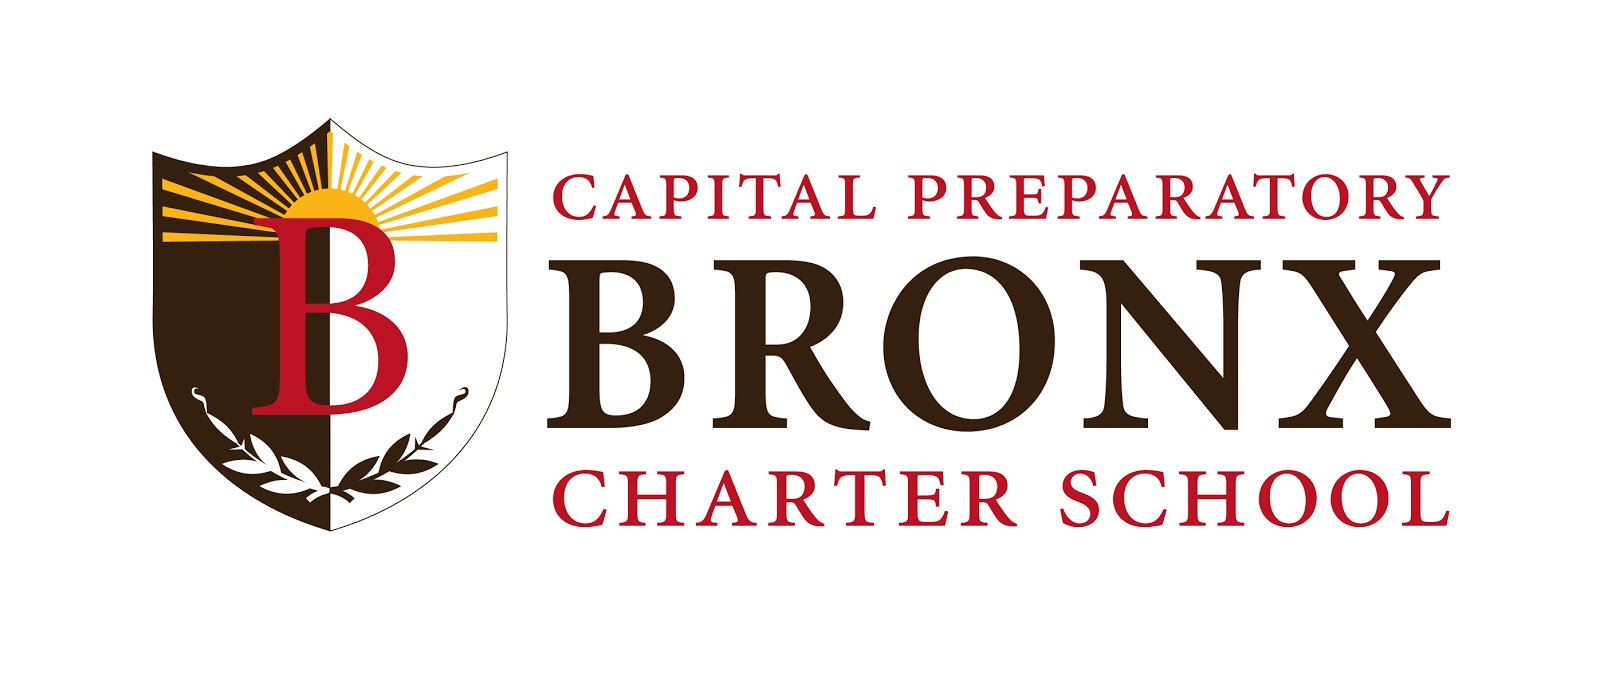 Capital Preparatory Bronx Charter School